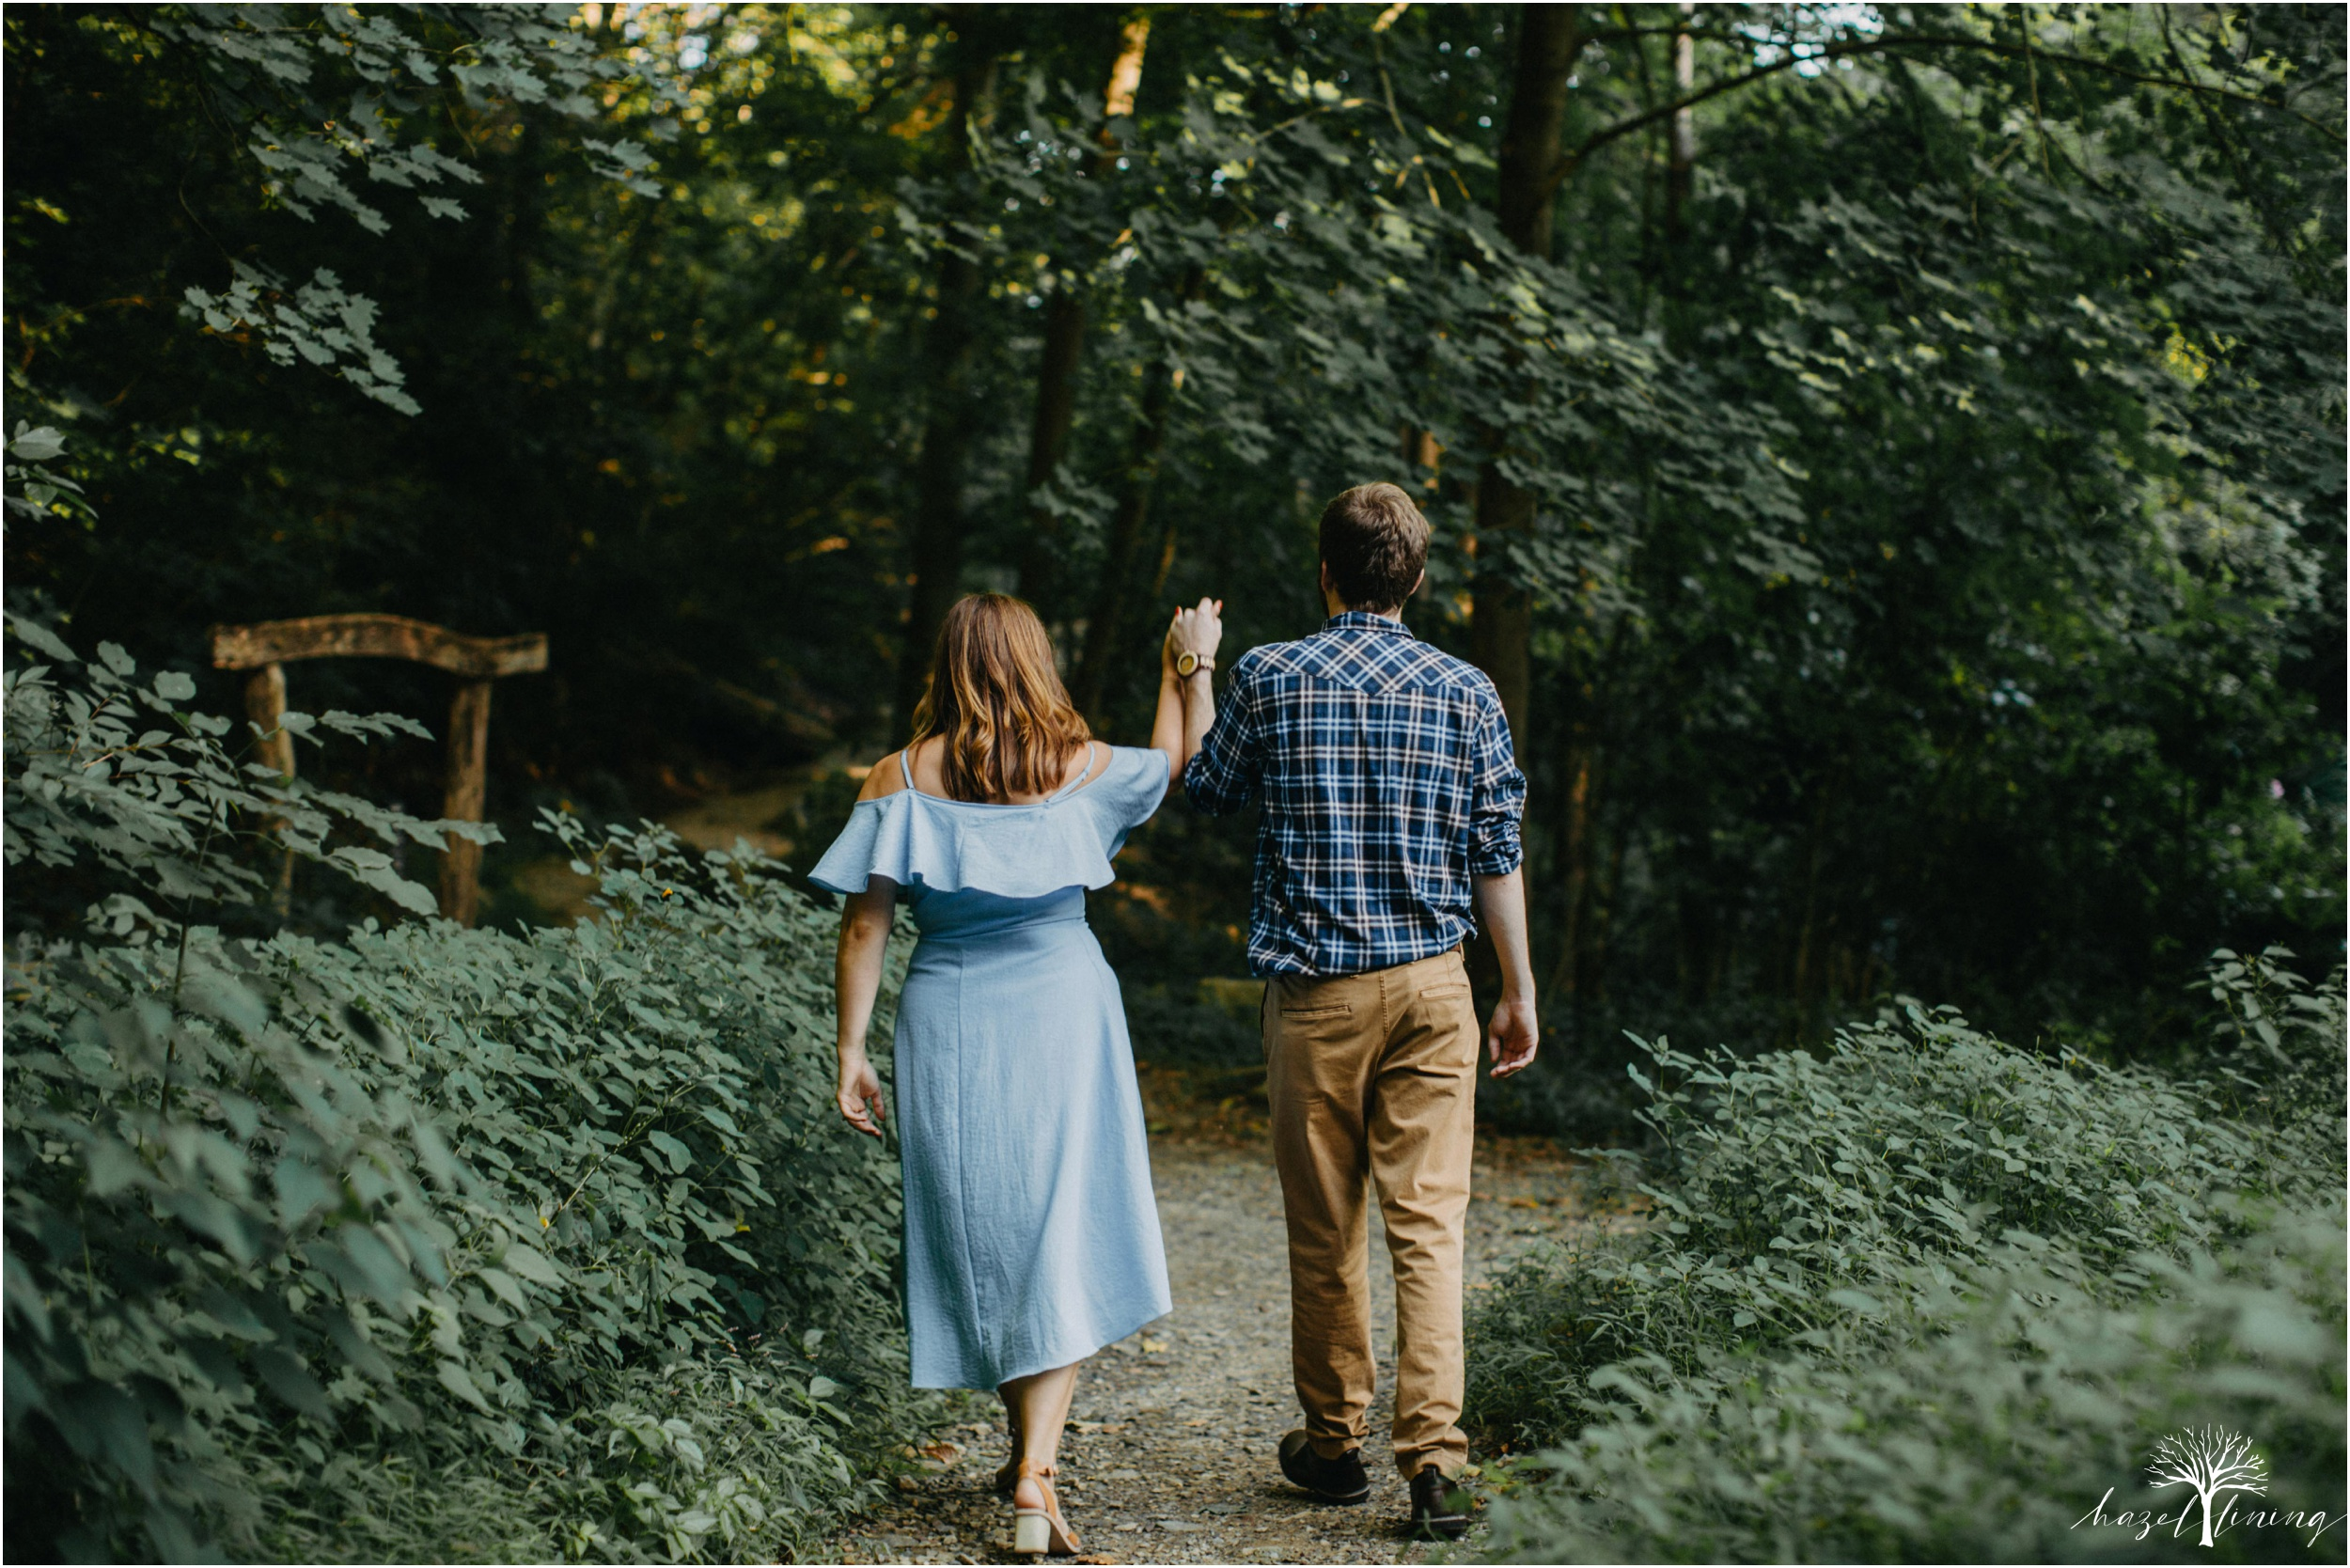 paige-kochey-chris-graham-valley-green-wissahickon-park-philadelphia-summer-engagement-session-hazel-lining-photography-destination-elopement-wedding-engagement-photography_0029.jpg